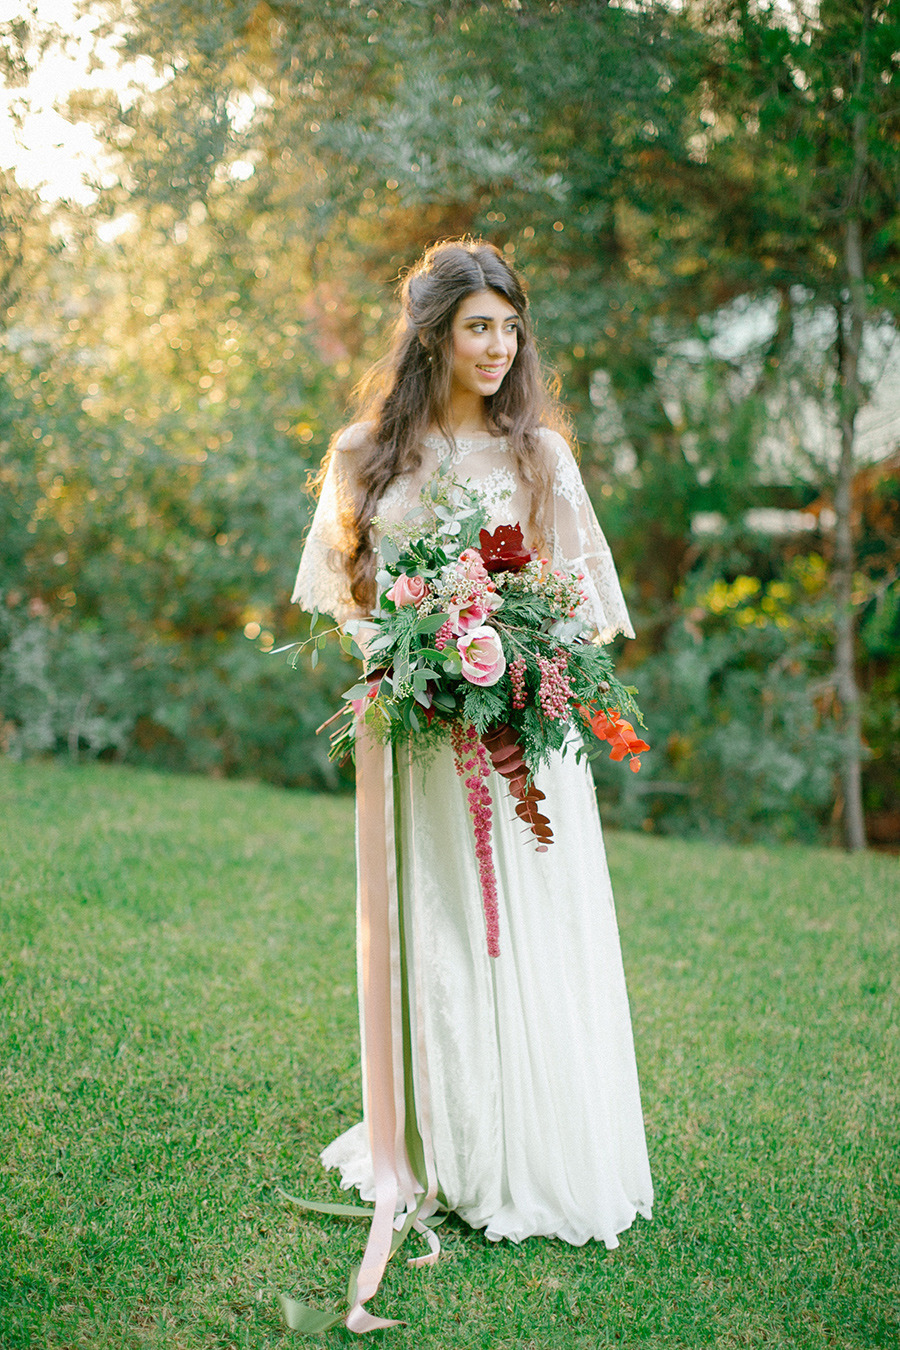 winter bride - Boho Chic Wedding Inspiration Shoot from Anna Roussos Photography - annaroussos.com | Read more : https://www.fabmood.com/boho-chic-wedding-inspiration-shoot-anna-roussos-photography